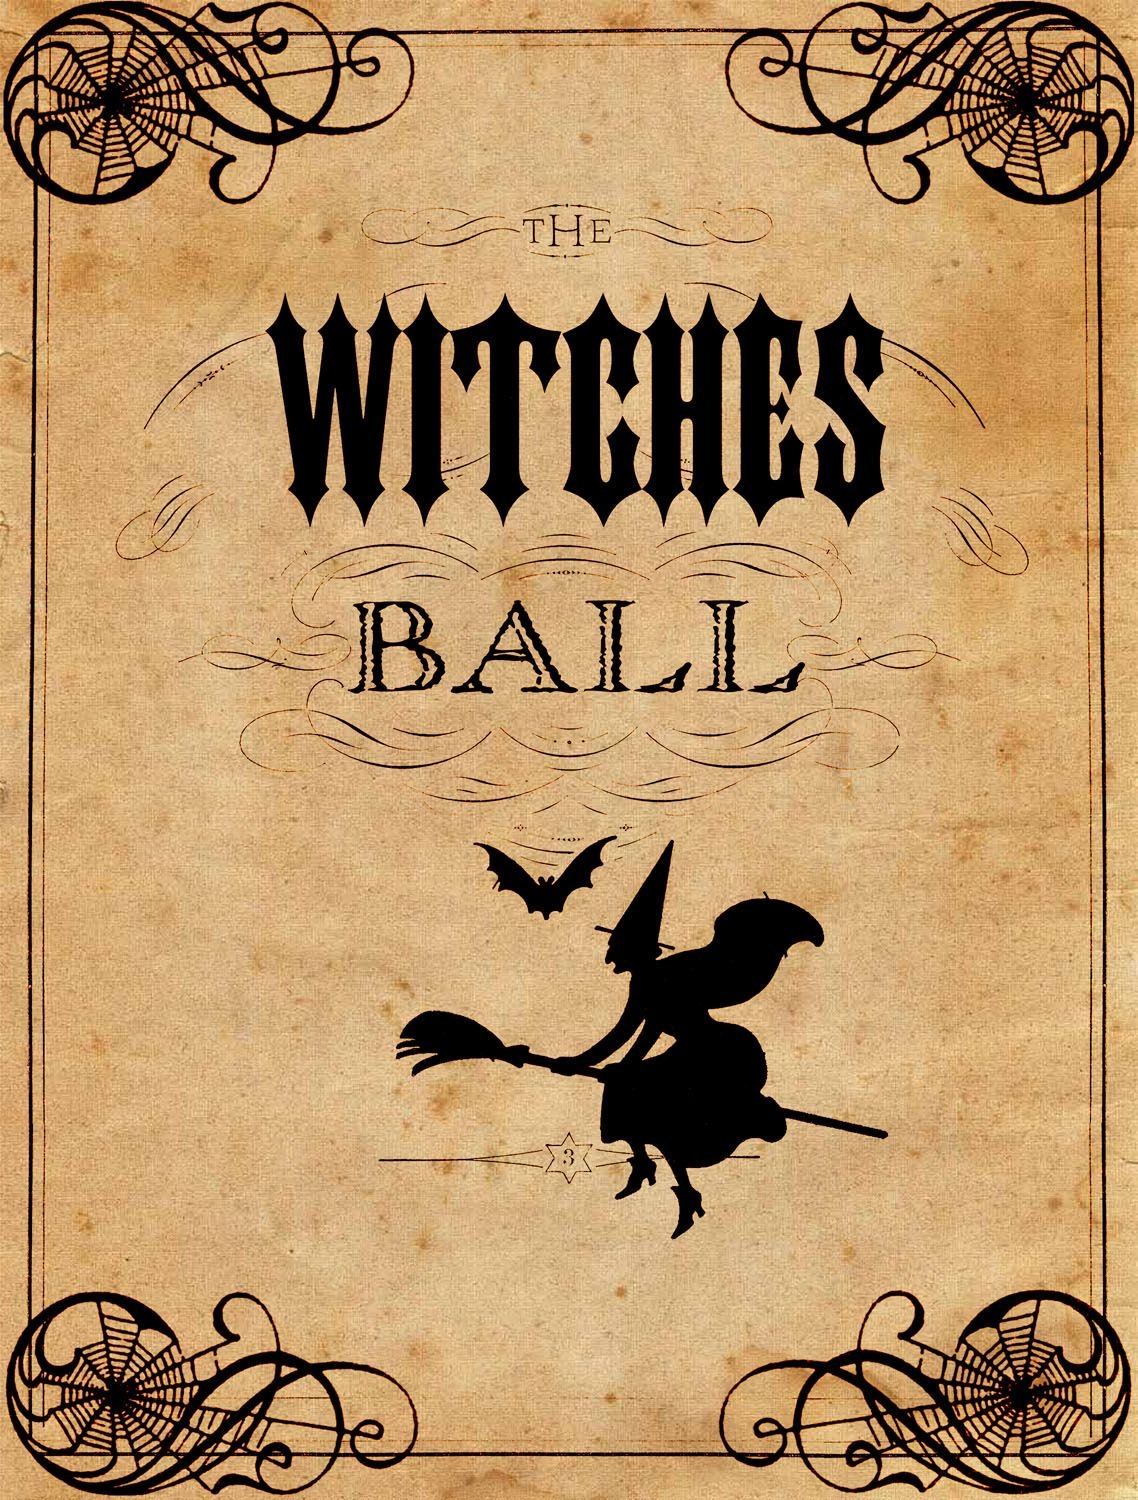 Vintage Halloween Printable - The Witches Ball | Halloween - Free Printable Vintage Halloween Images